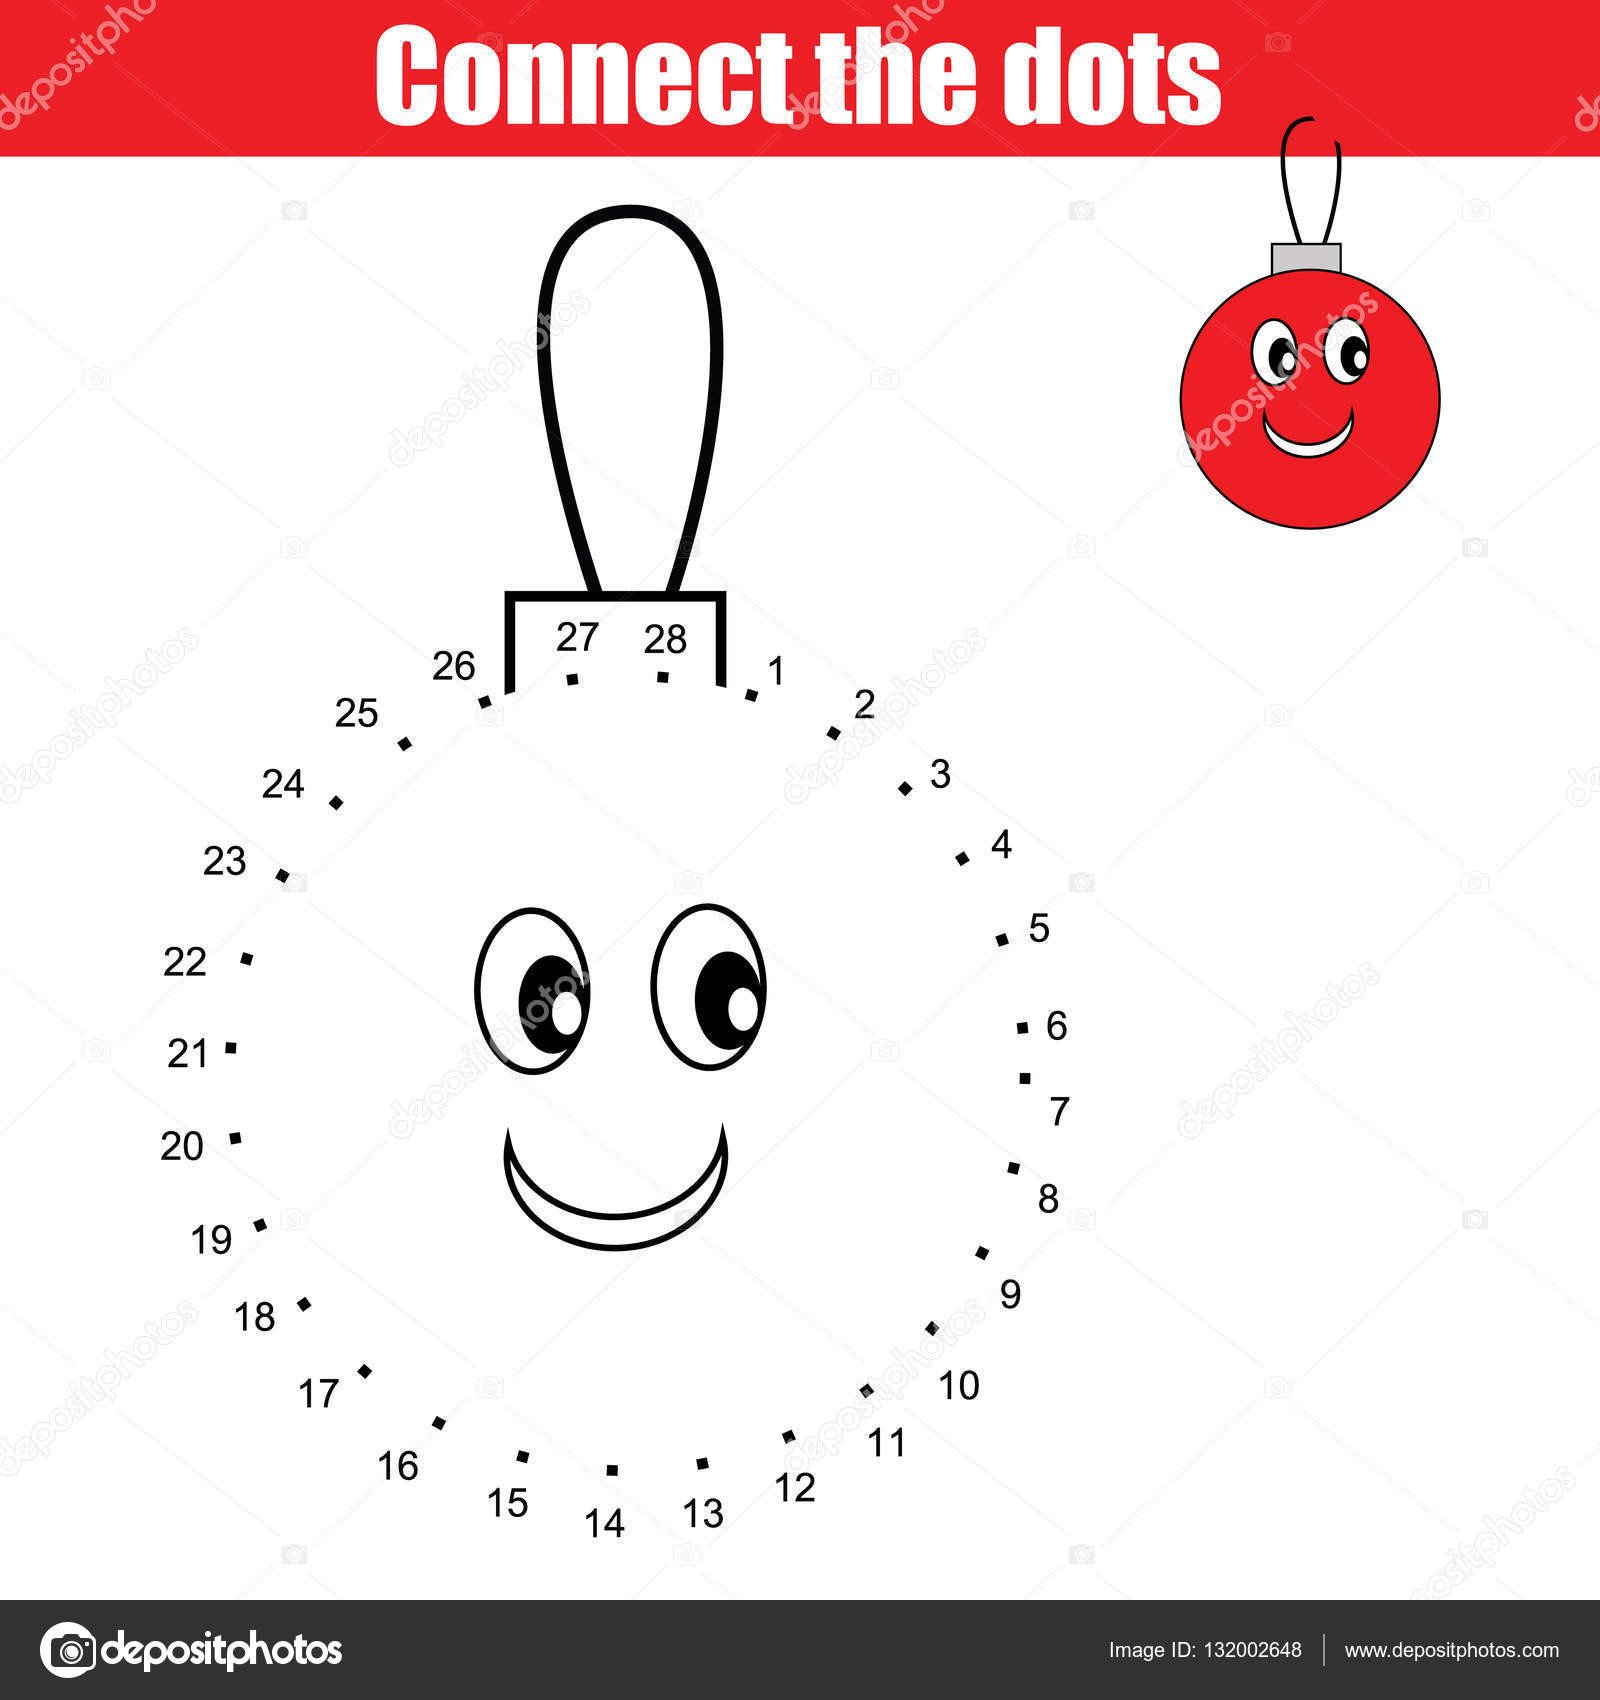 Connect the Dots Christmas Worksheets Connect the Dots Numbers Children Educational Game Printable Worksheet Activity Christmas Winter Holidays theme